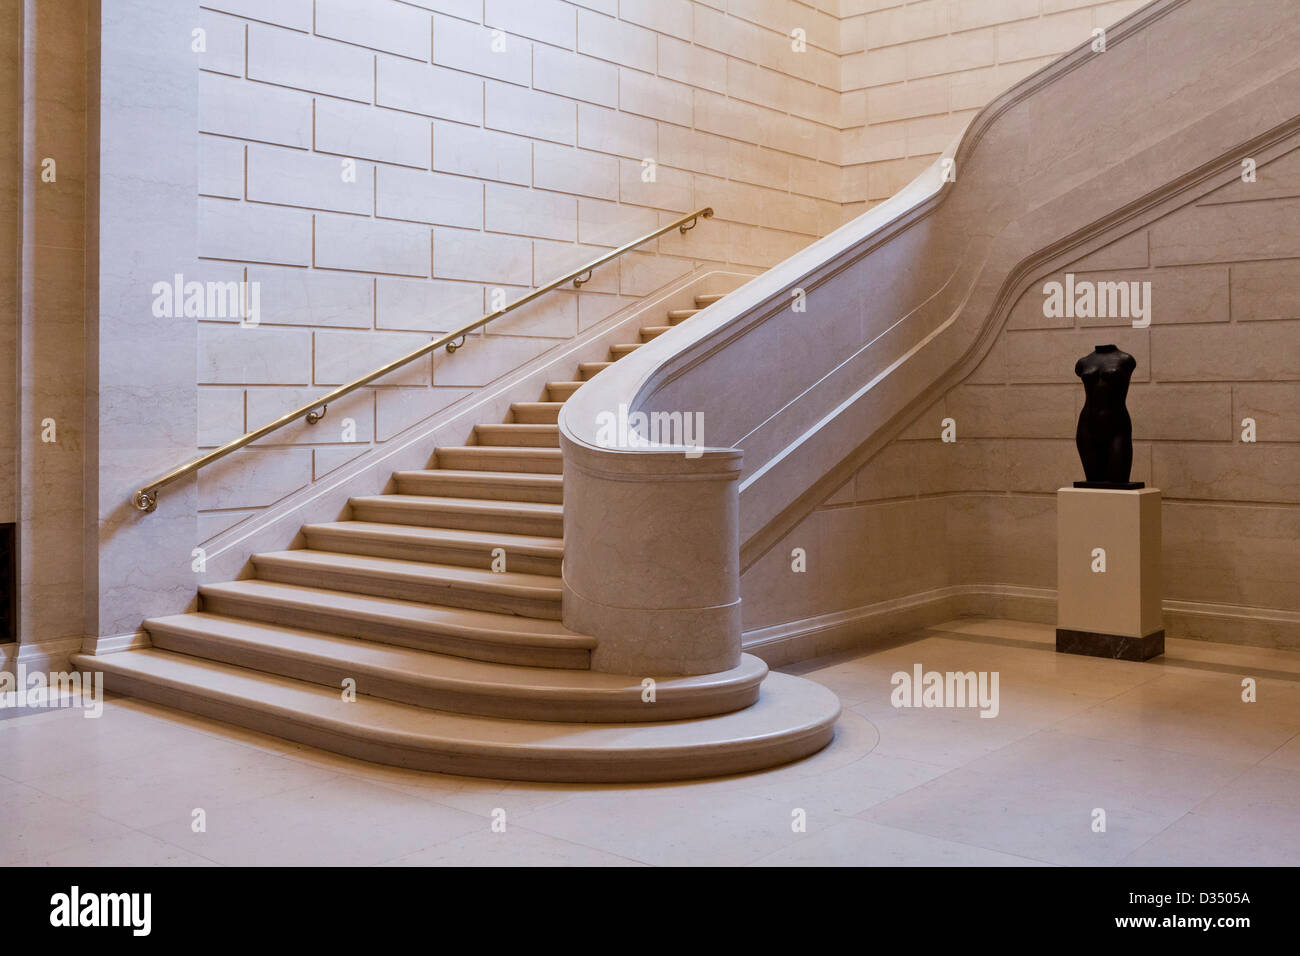 Marble stairs - Stock Image